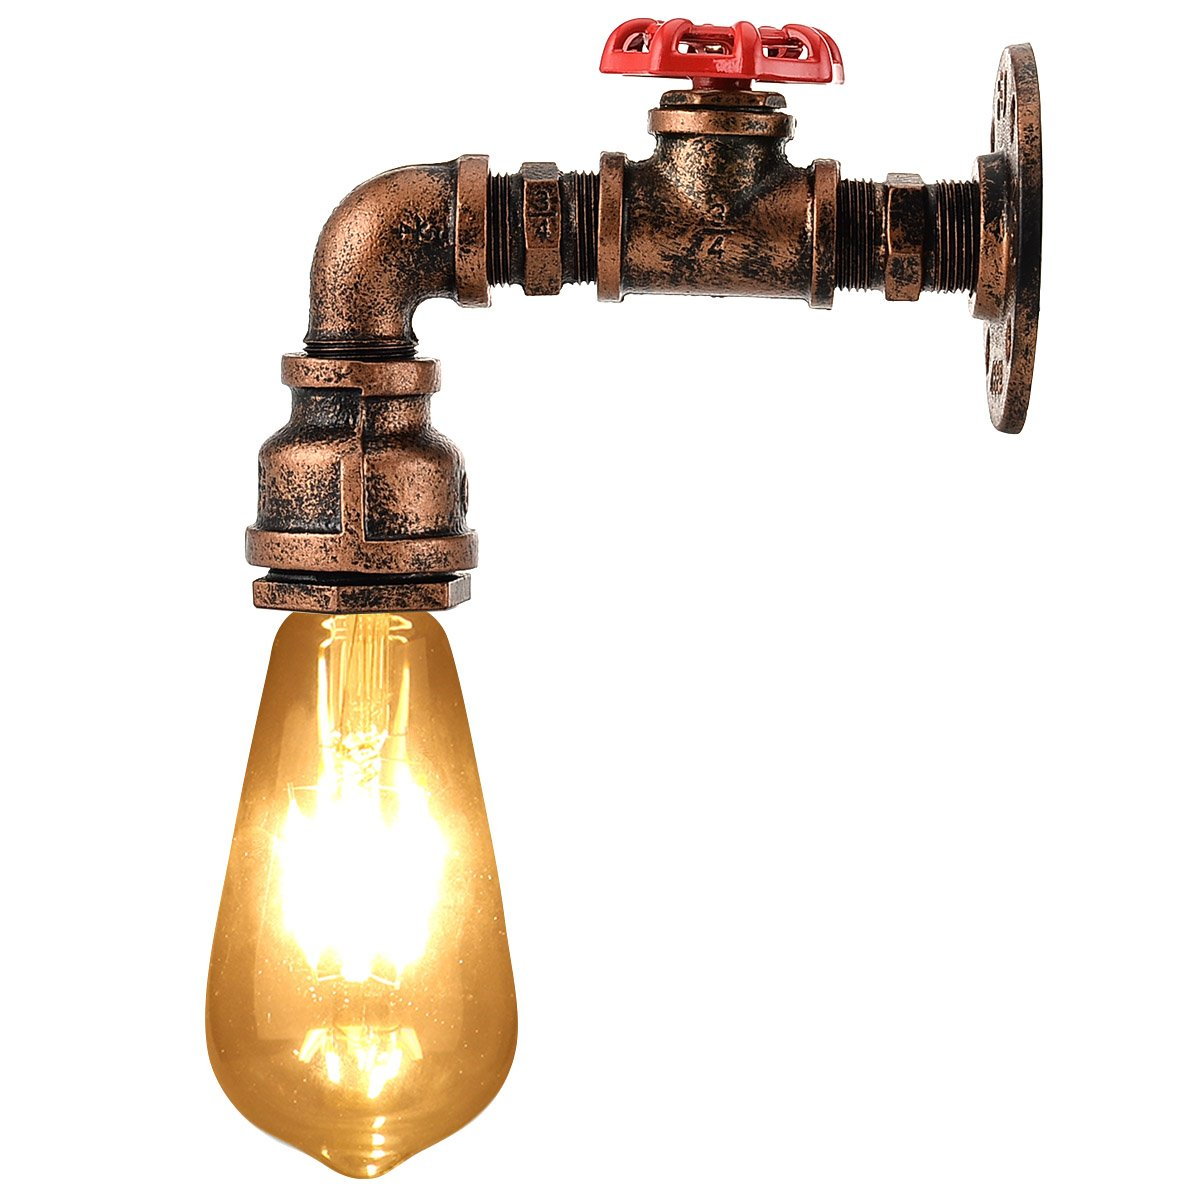 Rojo Cobre Color Cafe KAWELL Creativo Vintage L/ámpara de Pared Tuber/ía de Agua Aplique de Pared Industrial Retro Luz de Pared Hierro E27 60W Max para Restaurante Bar Dormitorio Cocina